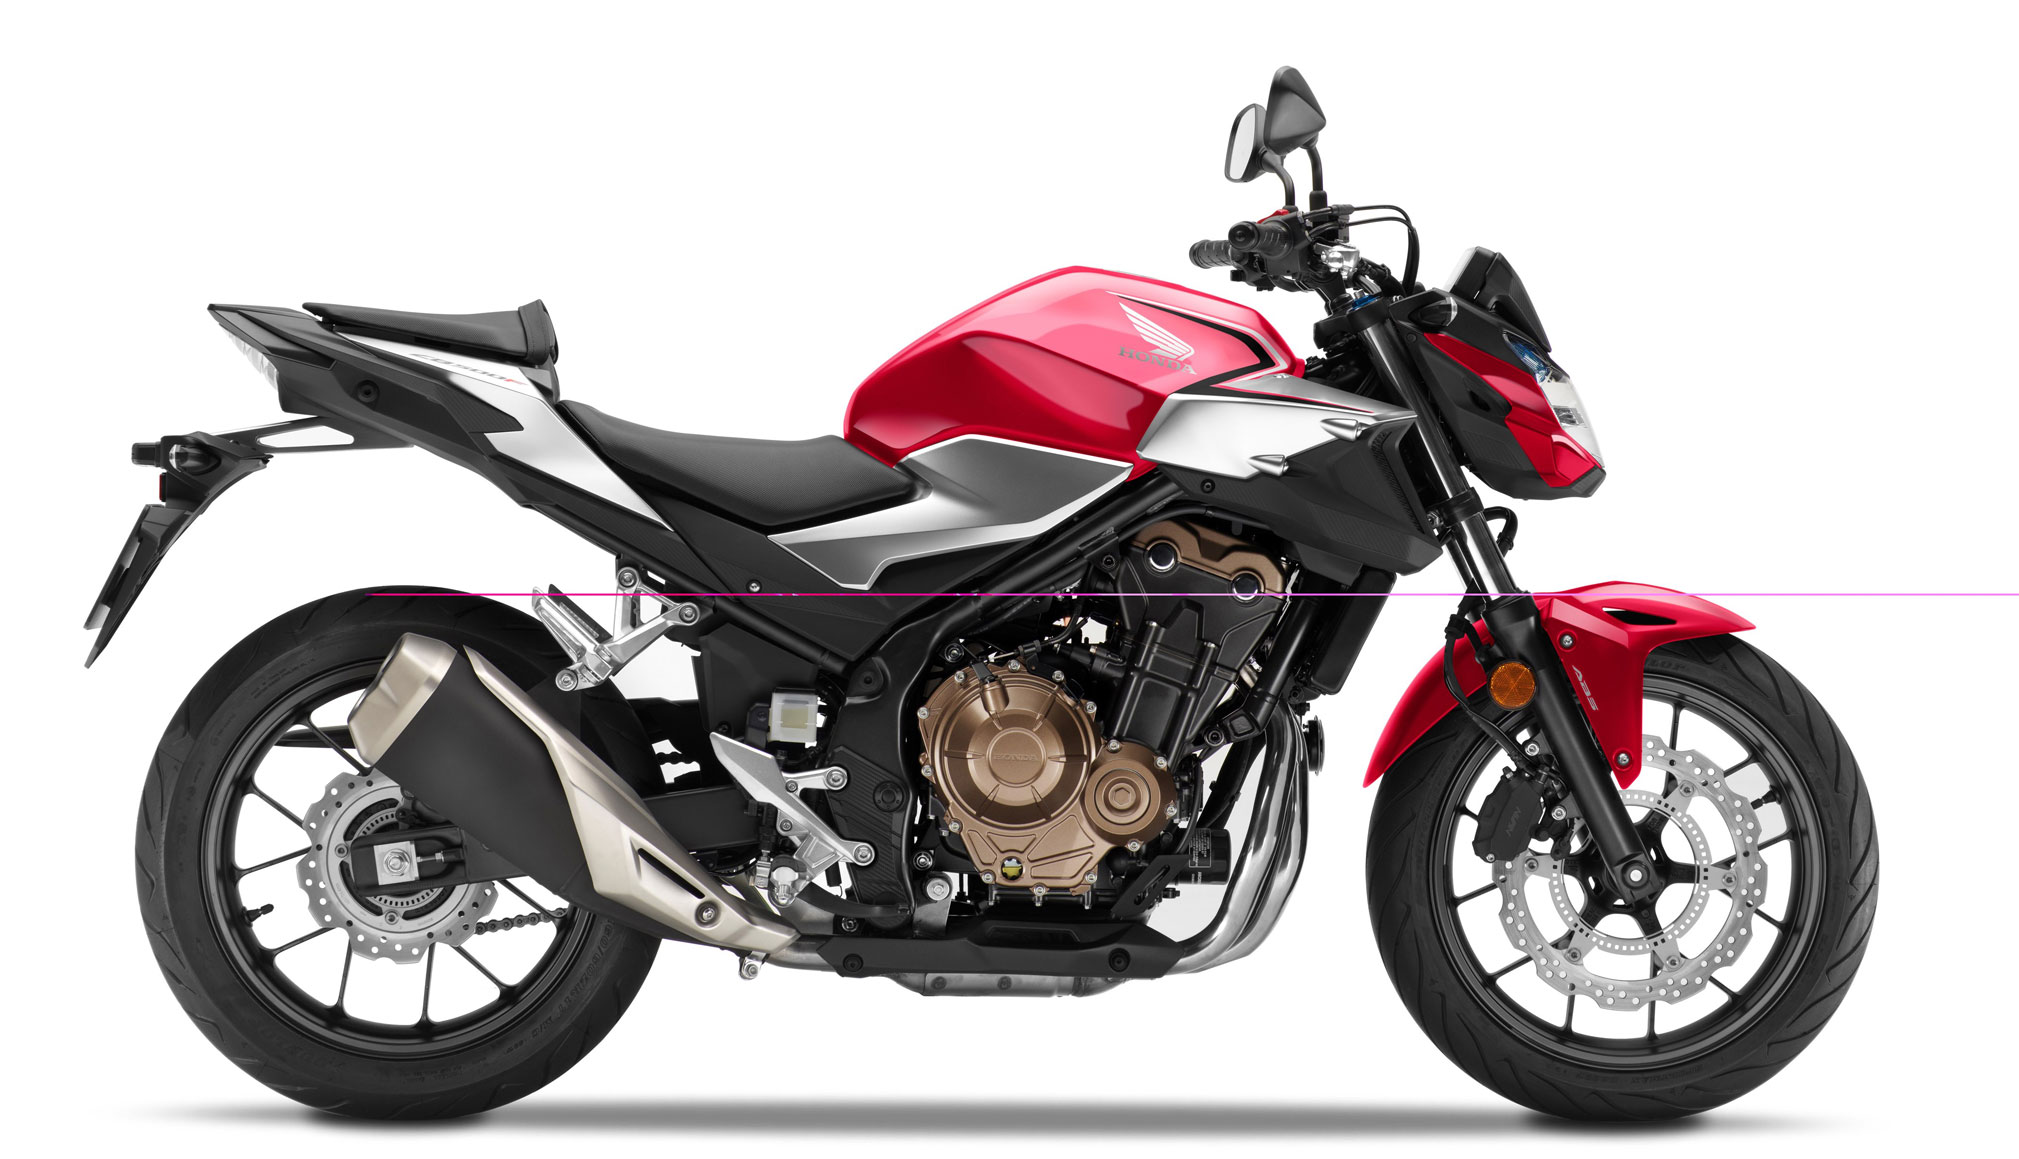 2019 Honda CB500F ABS Guide • Total Motorcycle